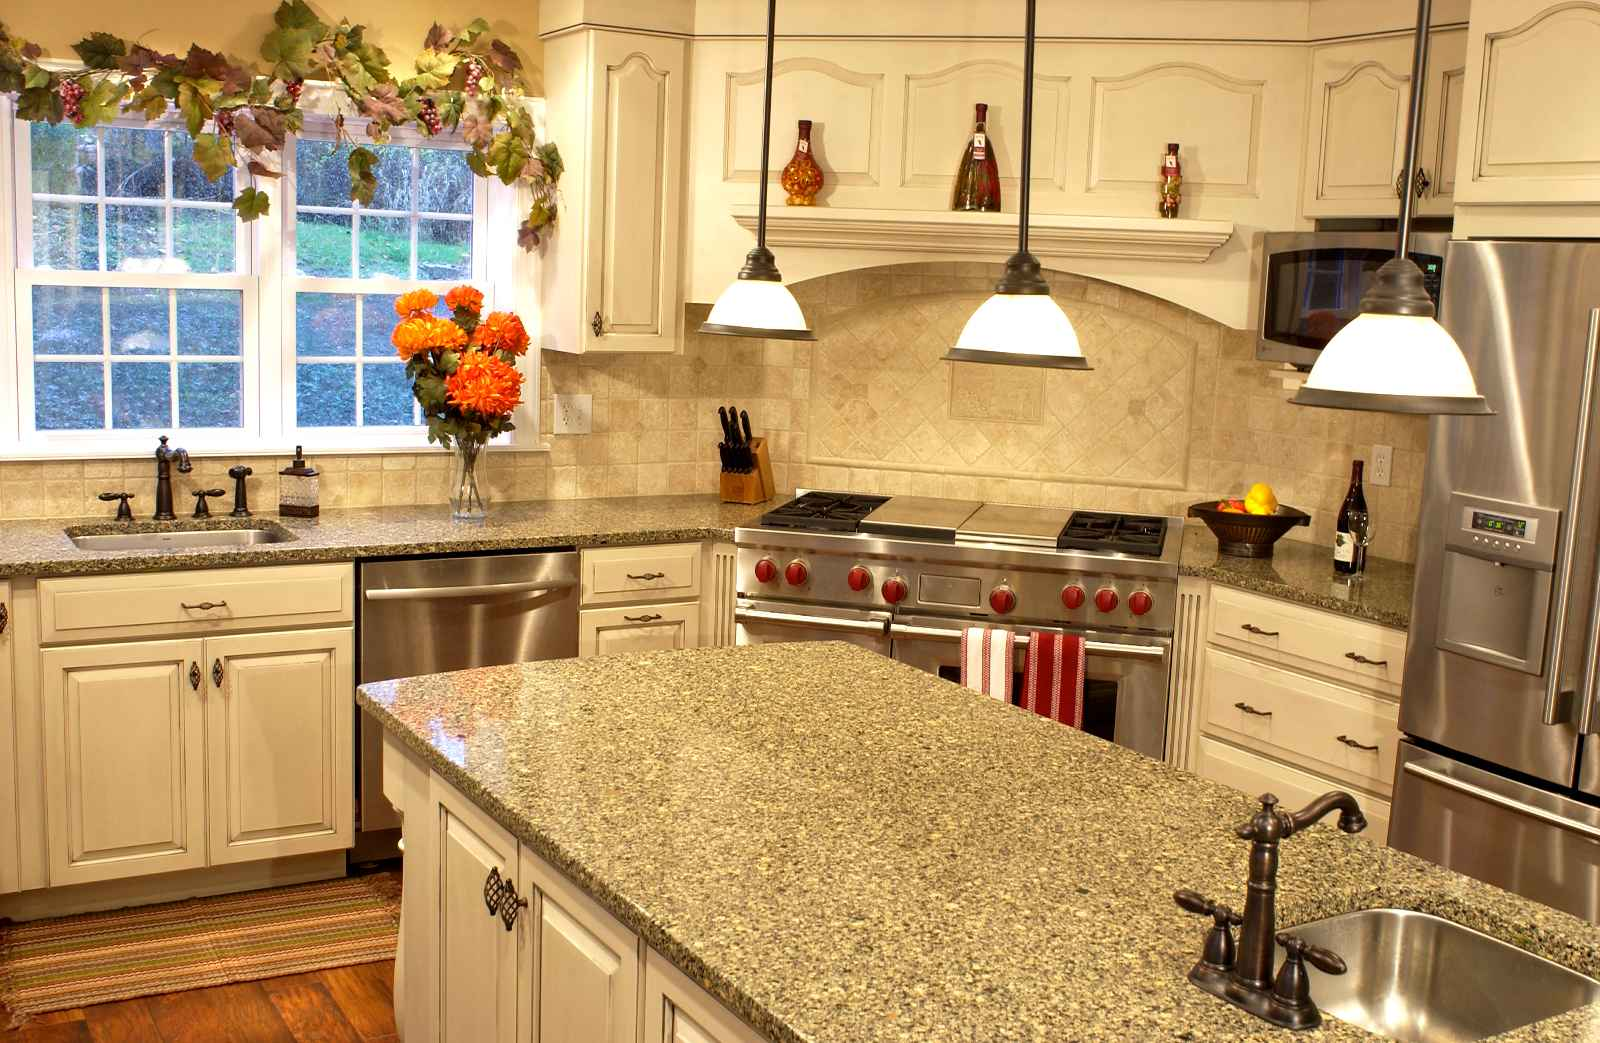 Cheap Countertop Ideas Kitchen | Feel The Home on Modern Kitchen Countertop Decor  id=85398